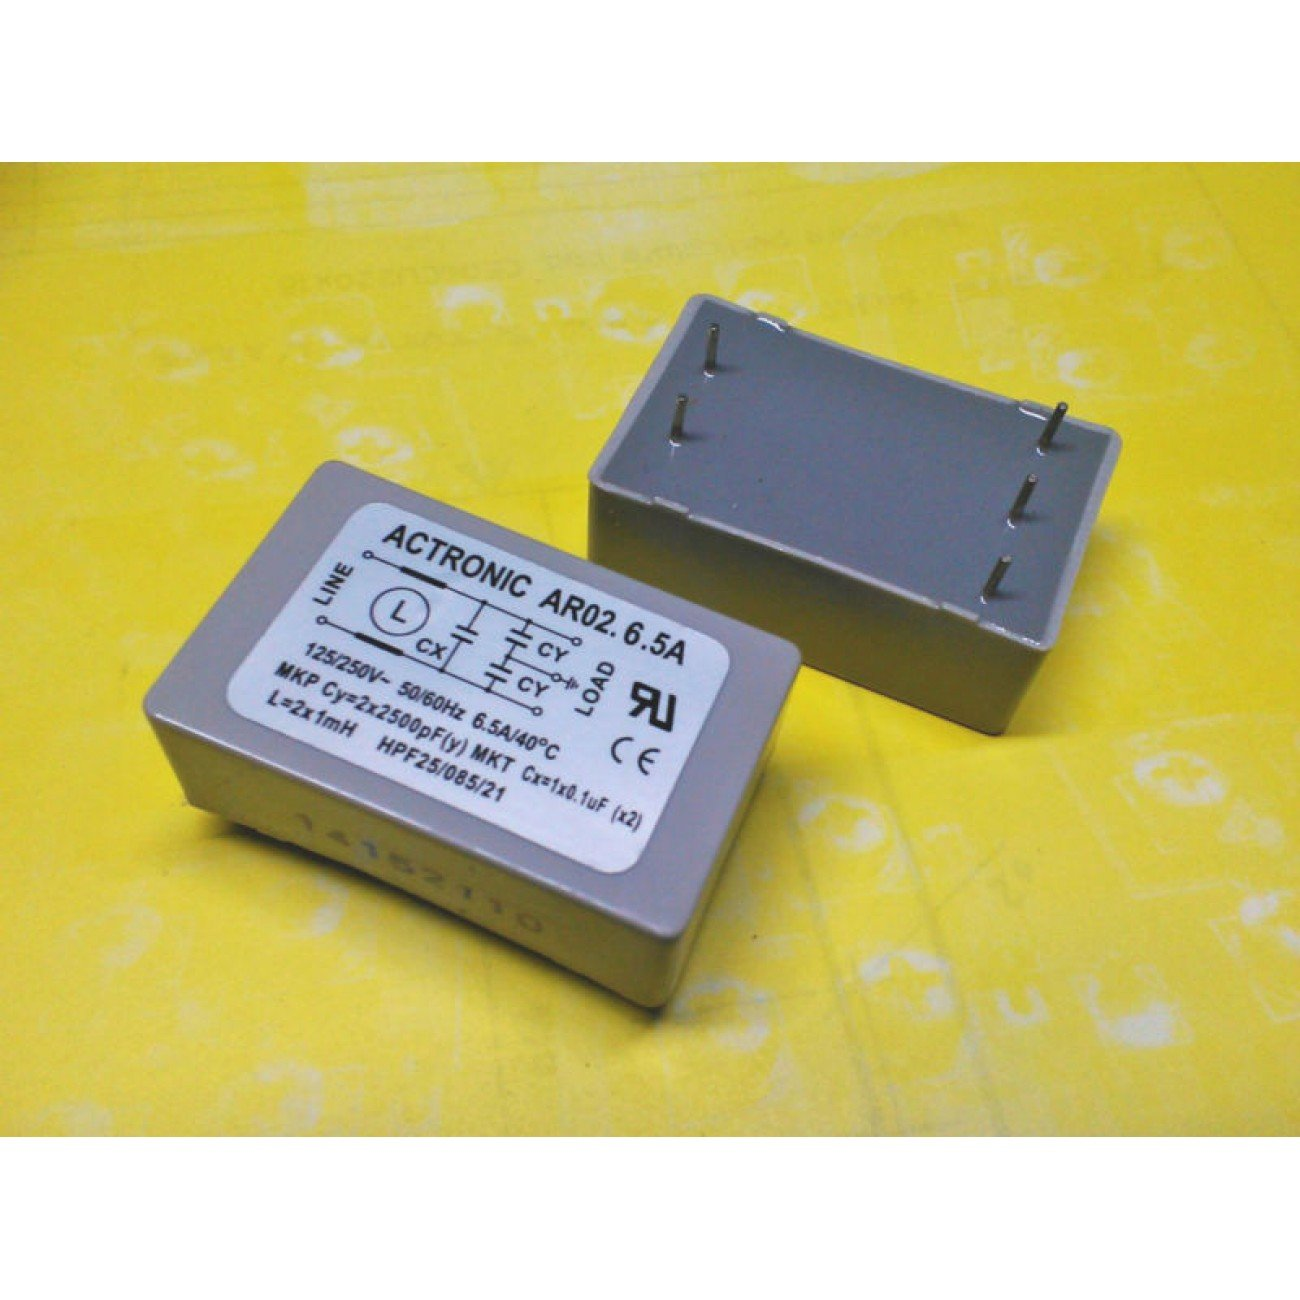 Filter network anti-interference printed circuit ACTRONIC mod AR02.6.5A